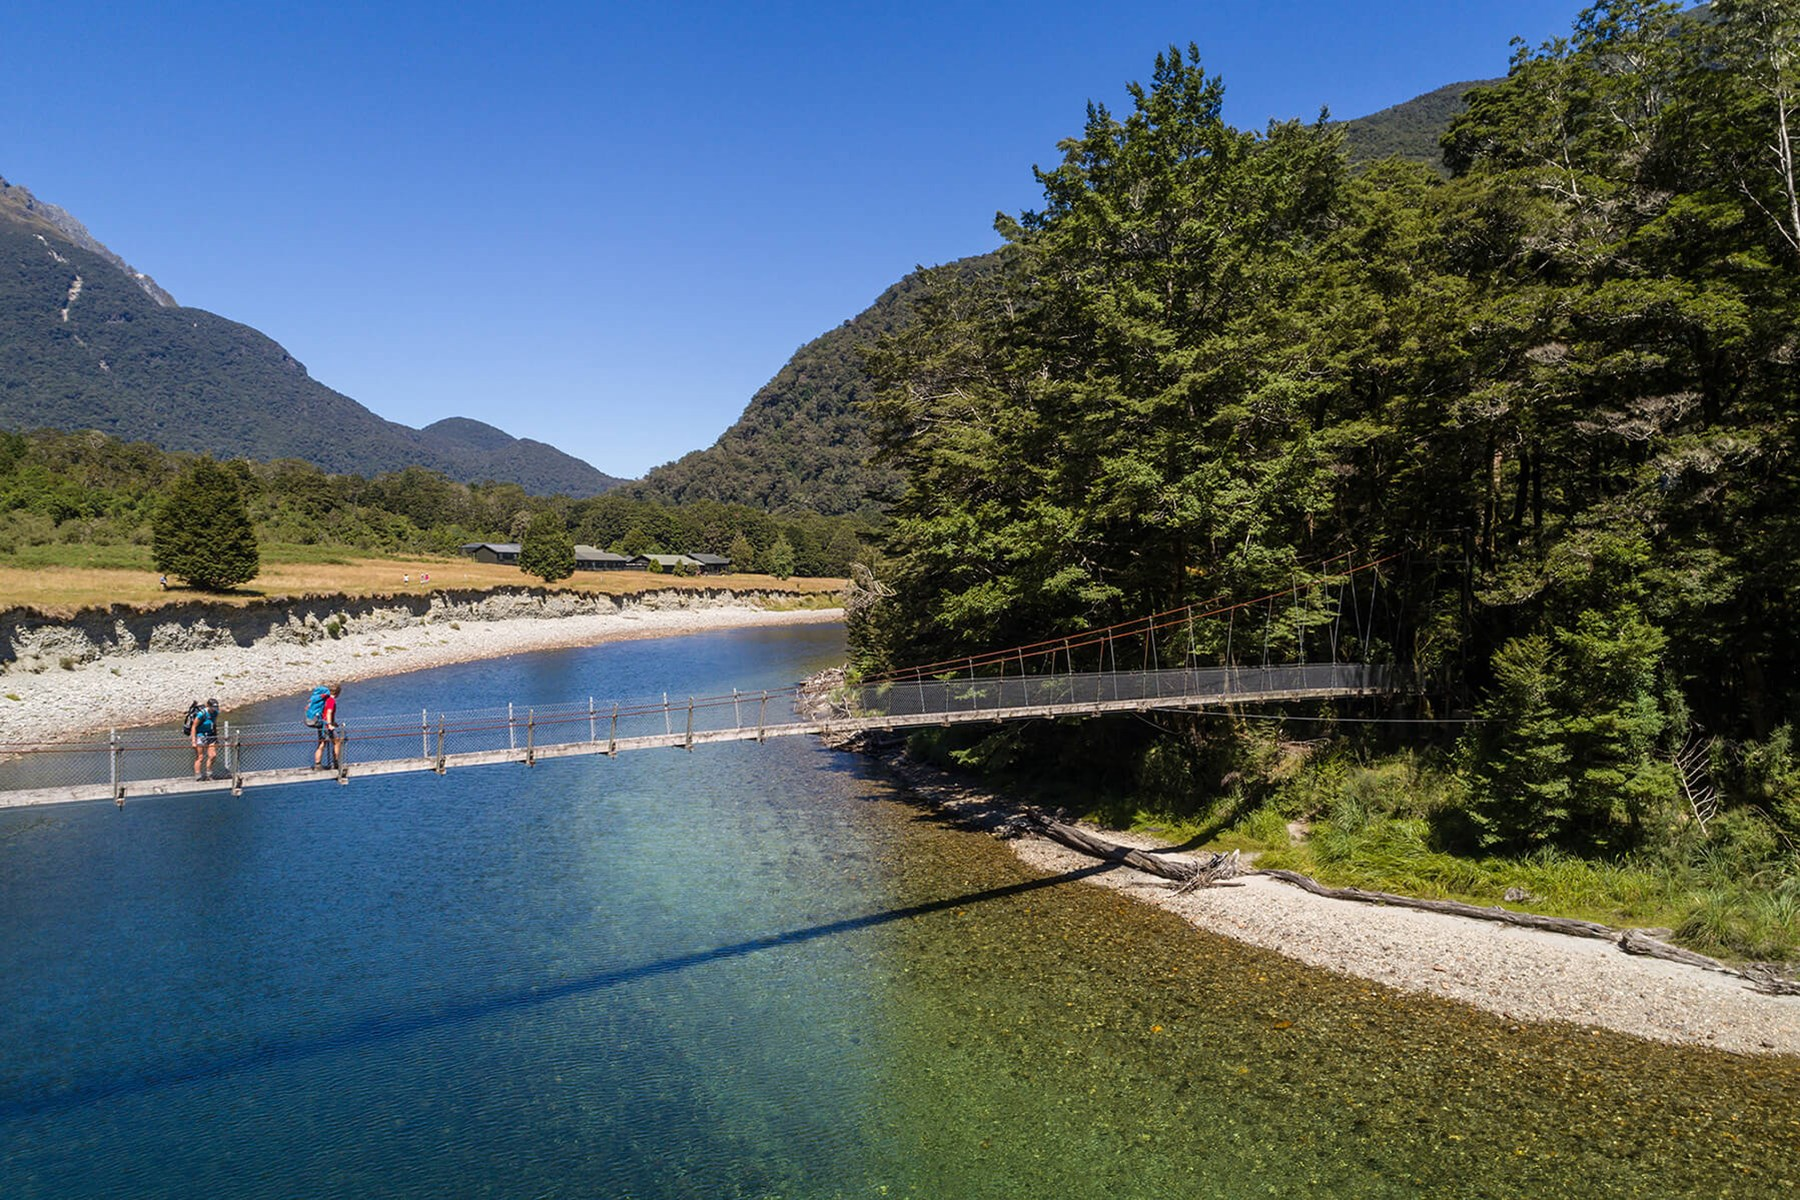 Clinton river bridge on the Milford Track guided walk